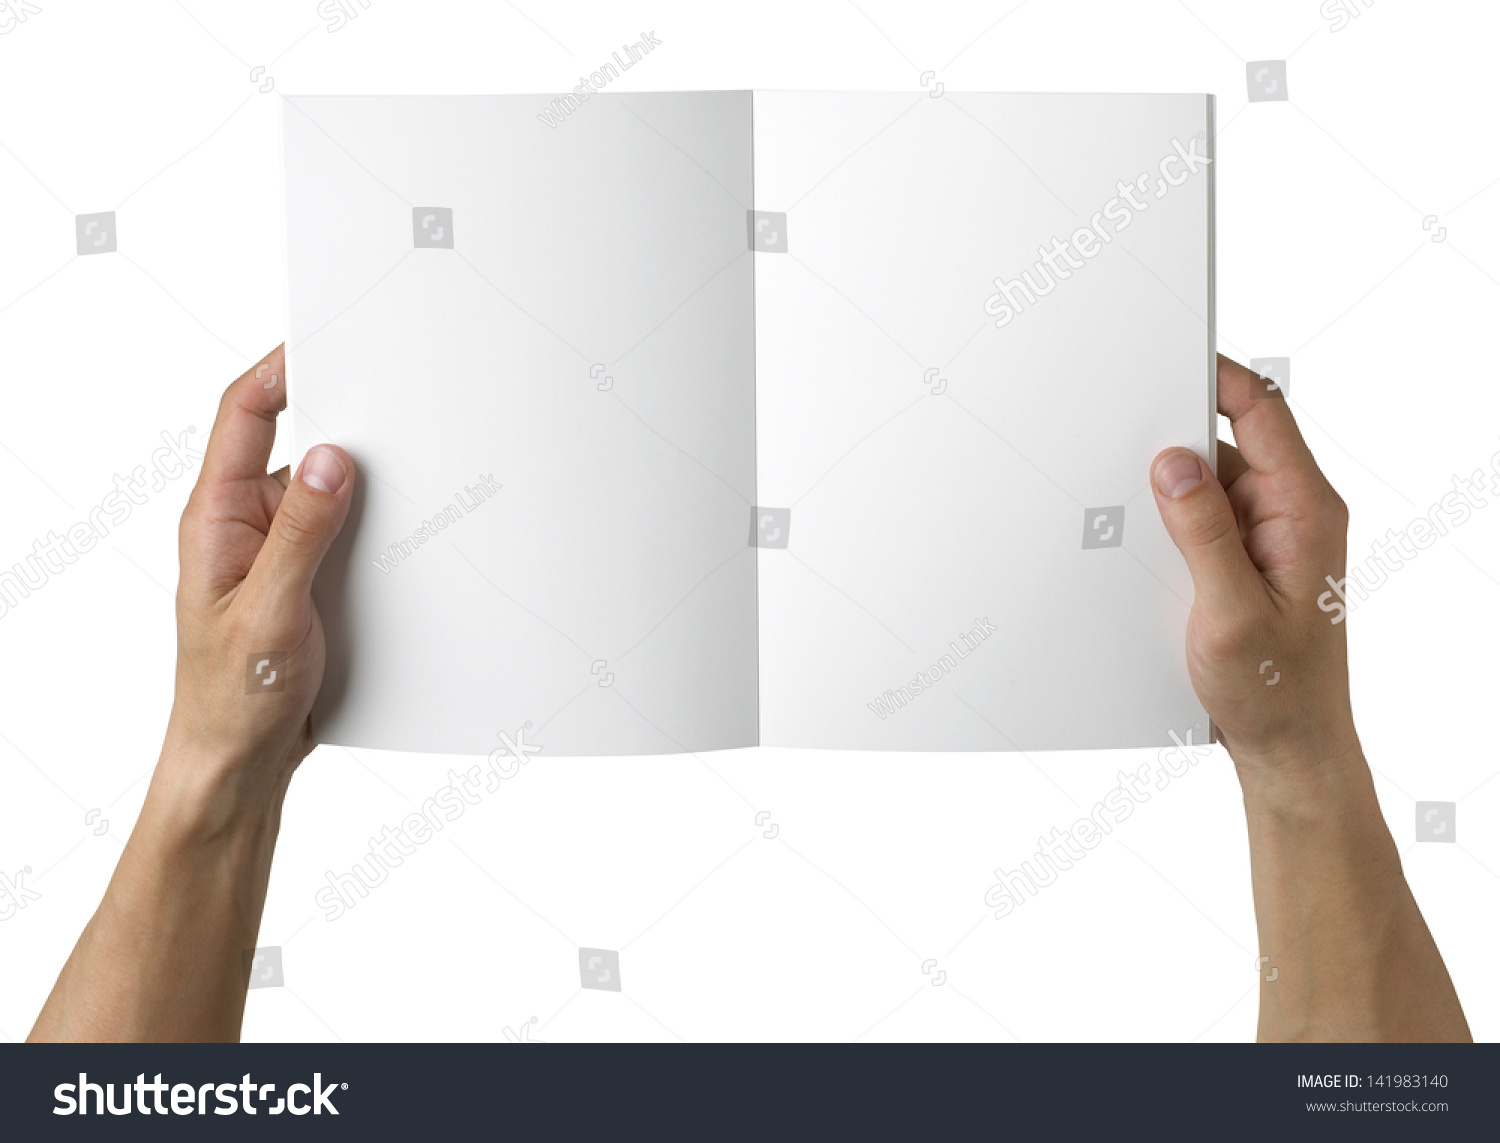 Overhead View Hands Holding Blank Book Stock Photo ...